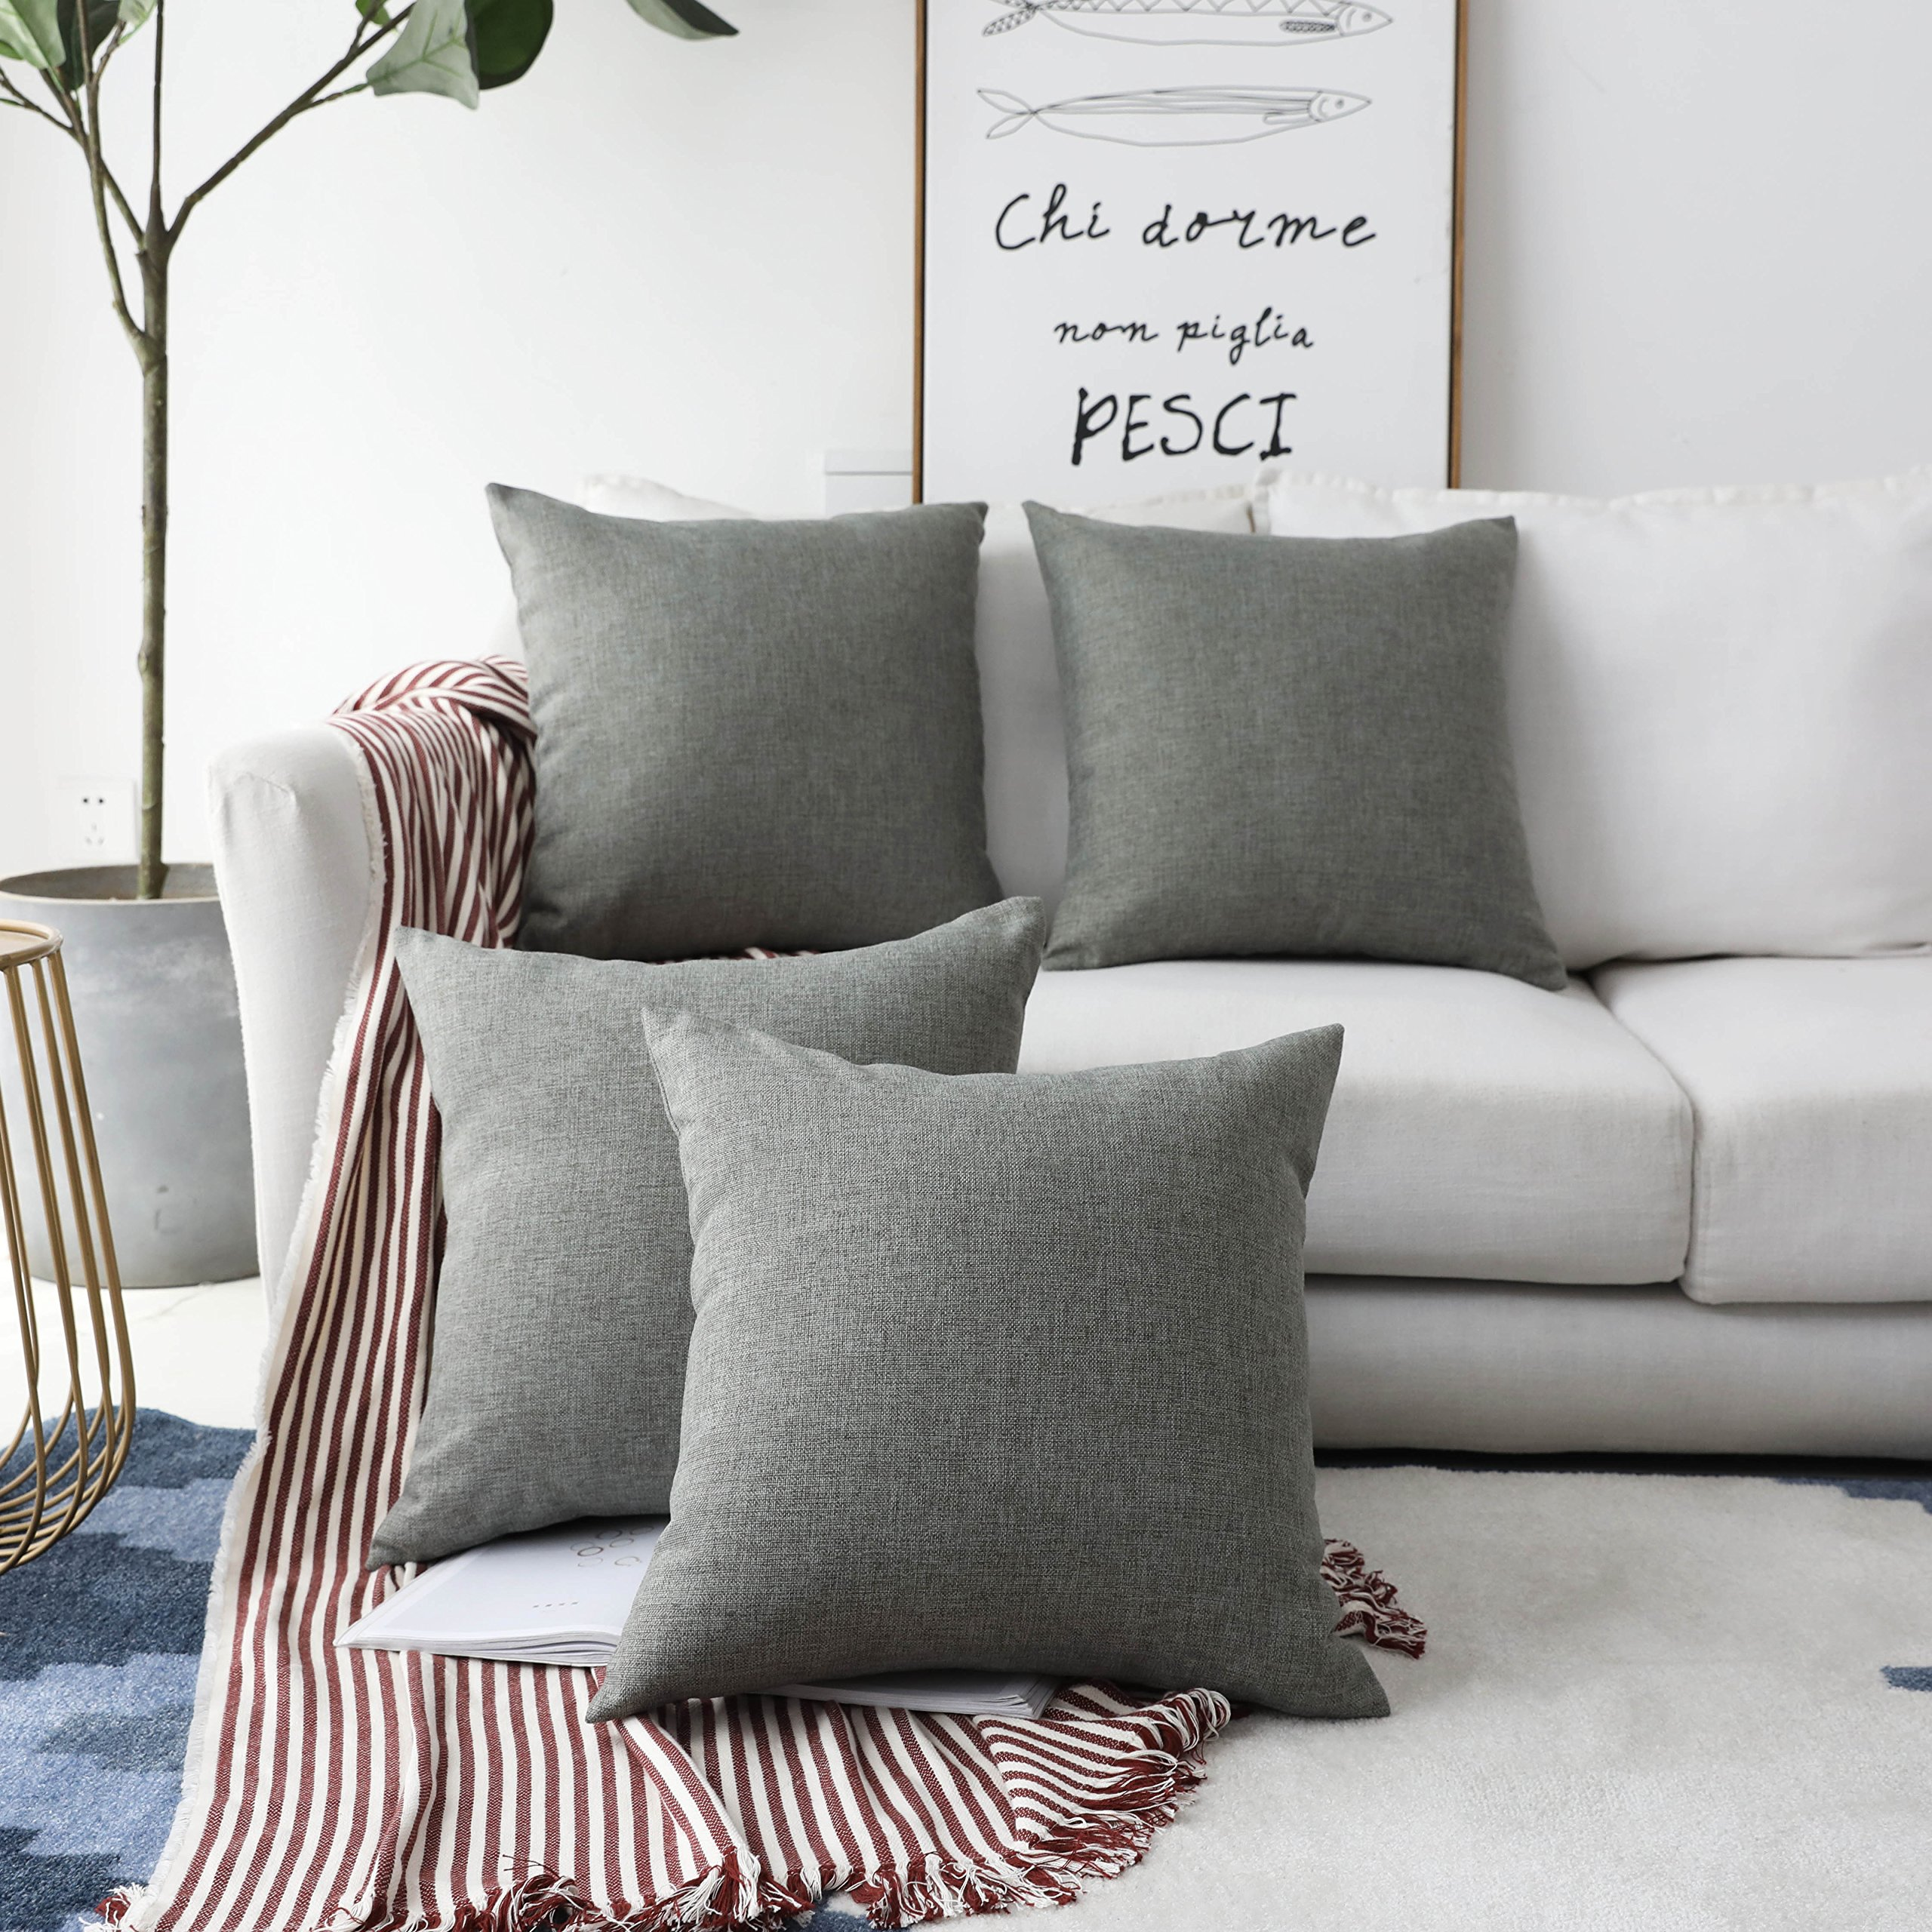 Sofa Covers Oversized: Oversized Couch Pillows: Amazon.com